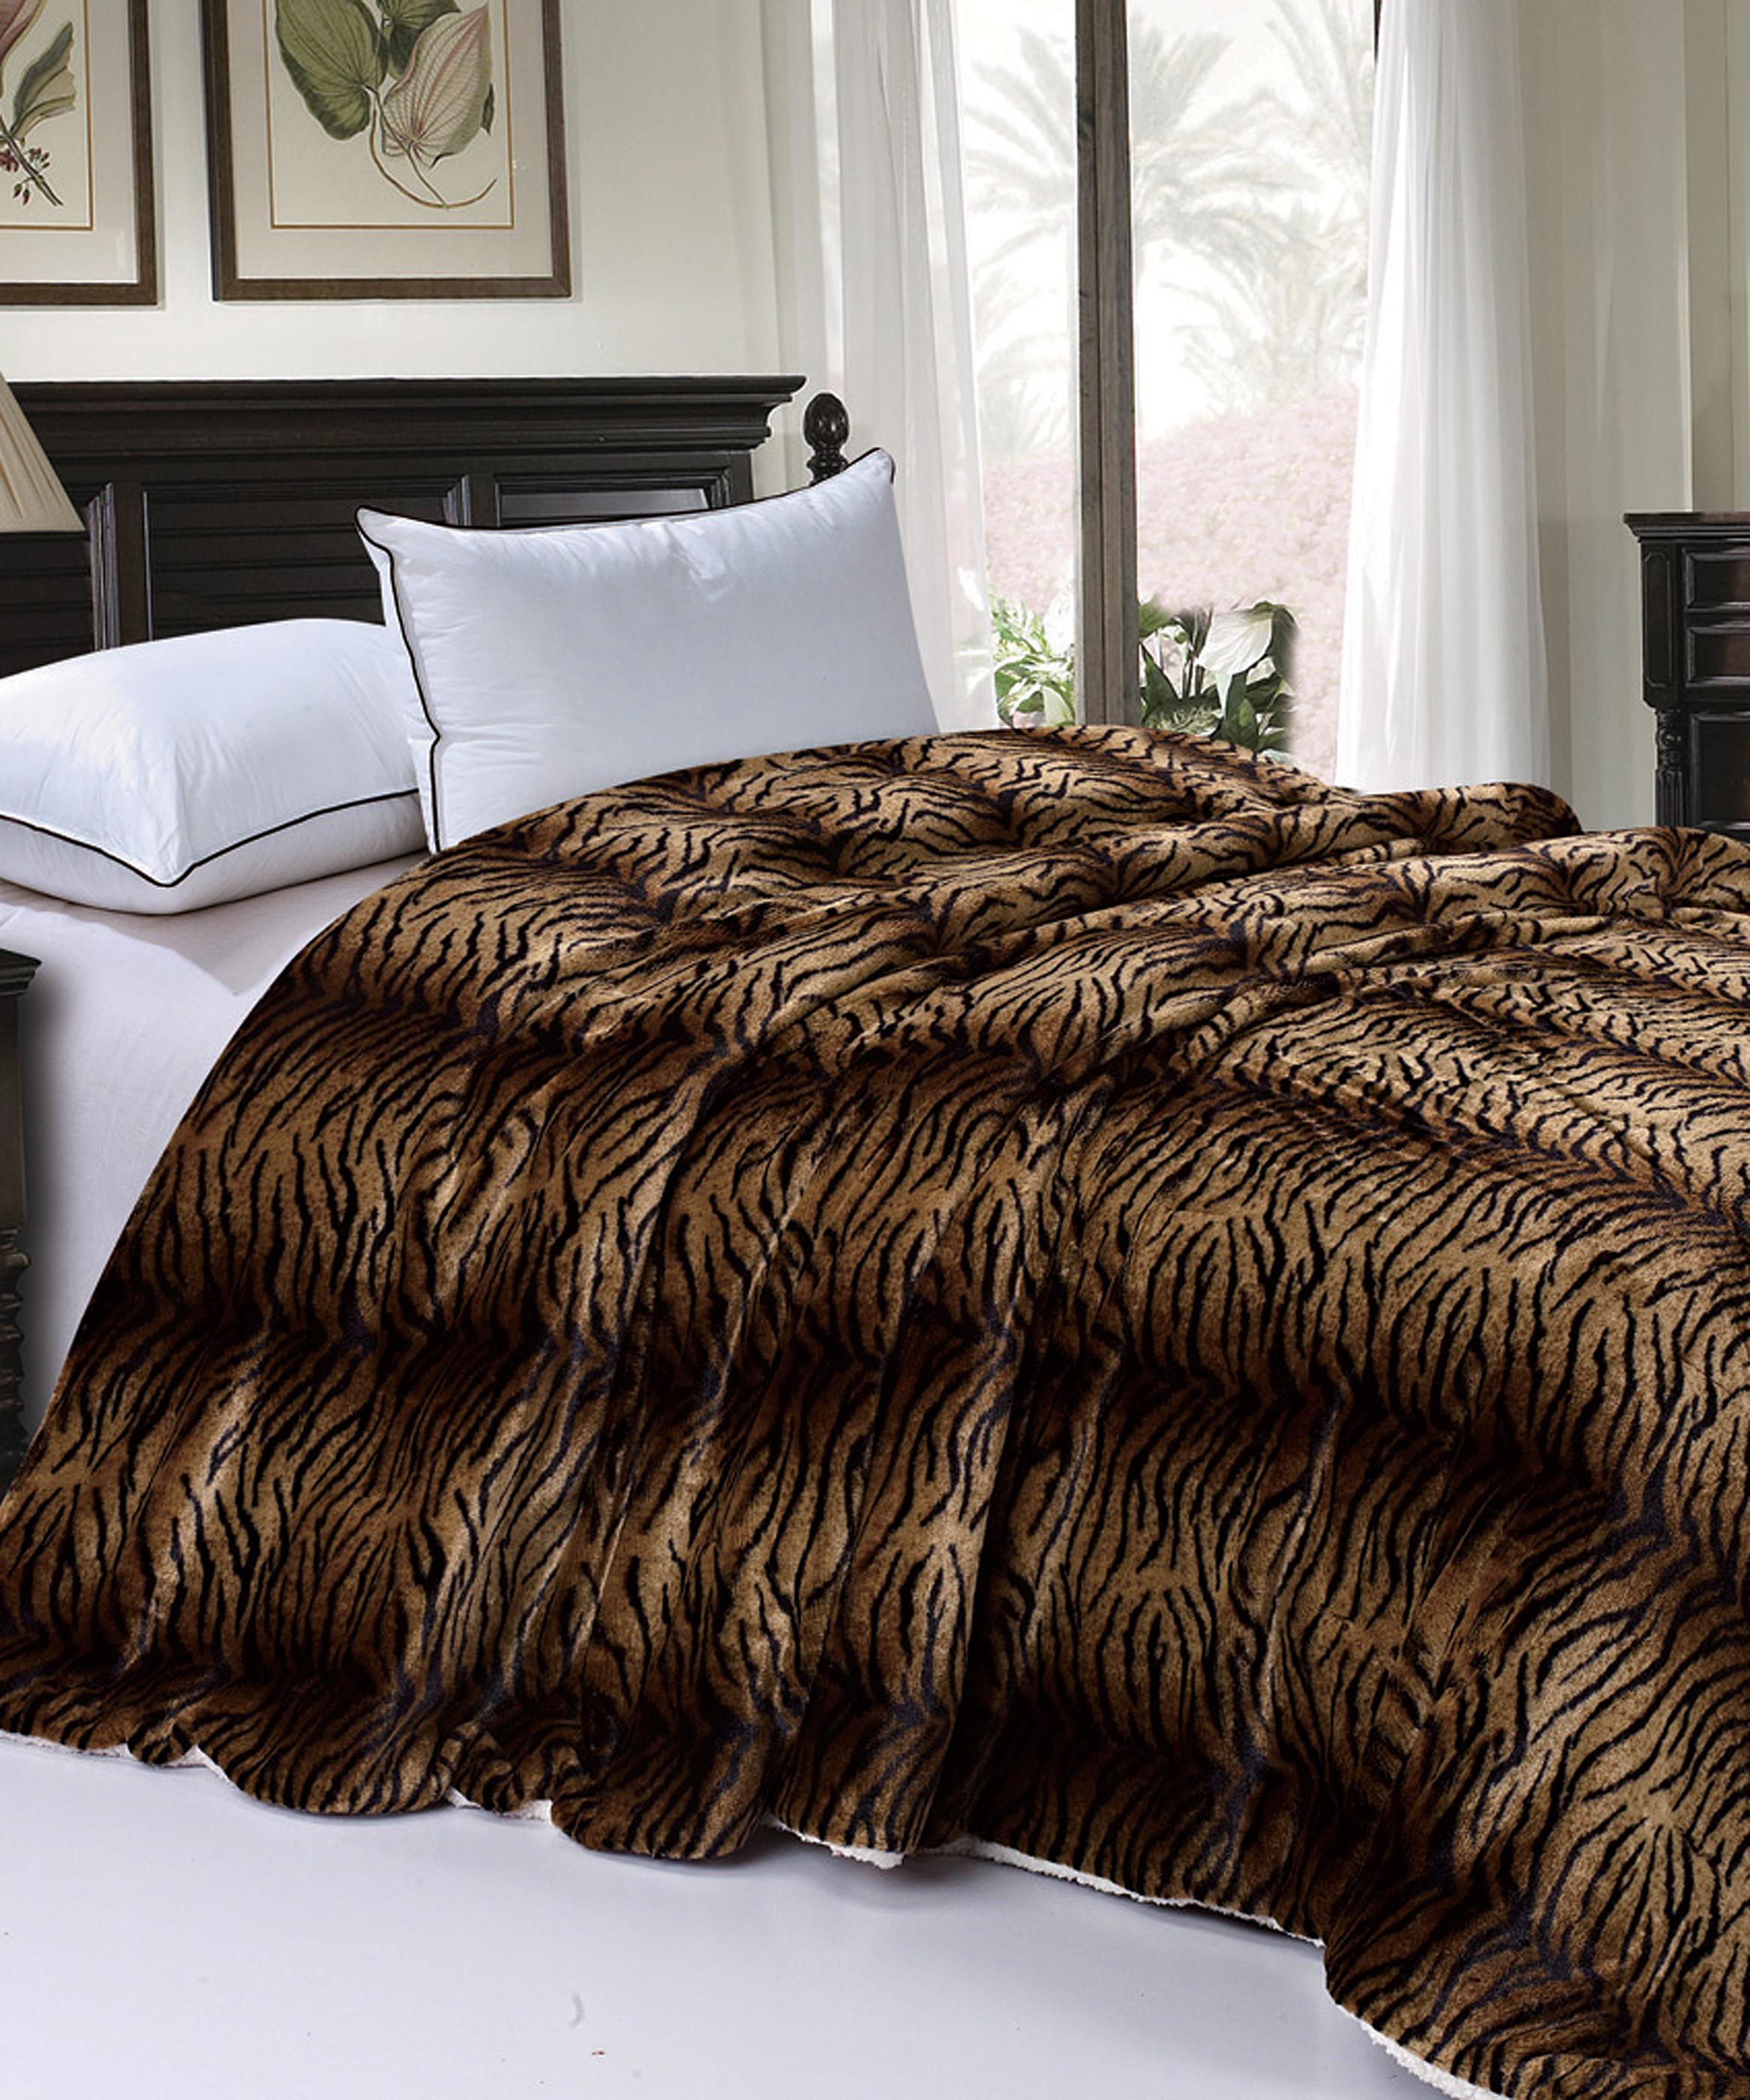 pin bed champagne to taupe fox thick tan bedding faux wild hair a line dense cut reverses fur sheared rabbit luxurious lush by mannered guard base on lap ivory skin and rich throw